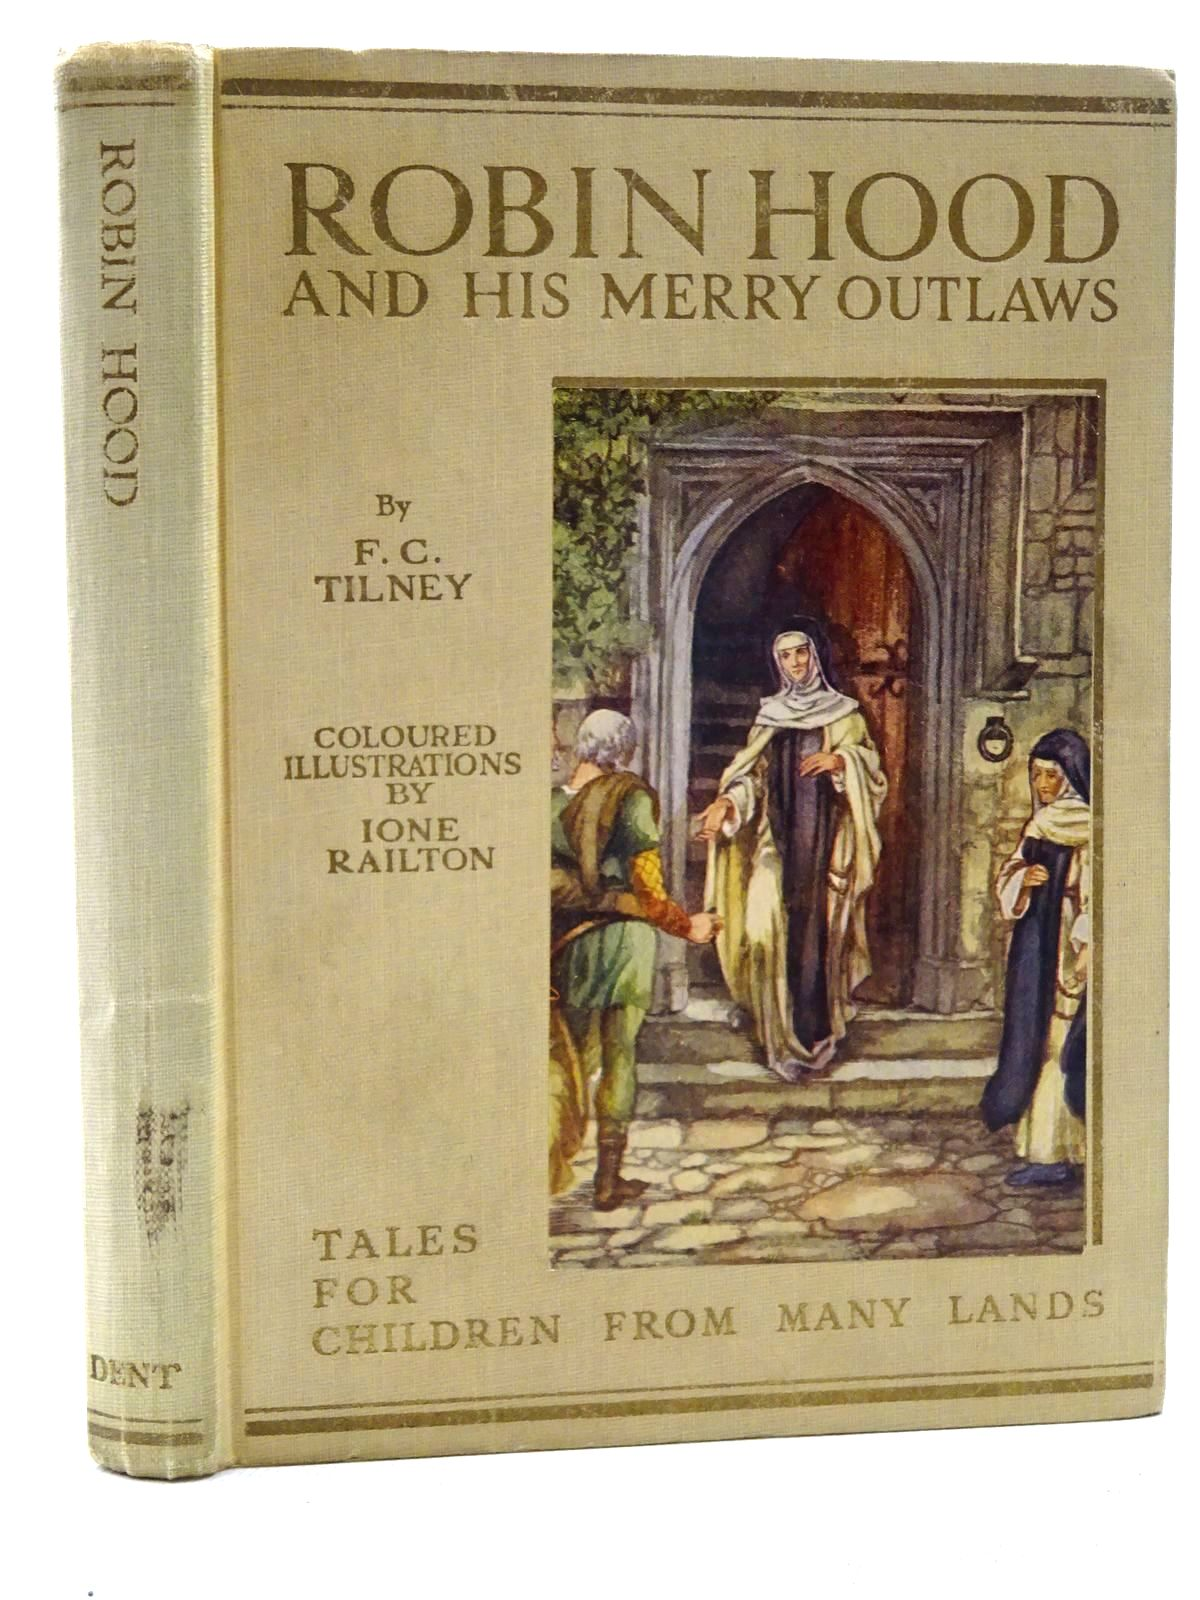 Photo of ROBIN HOOD AND HIS MERRY OUTLAWS written by Tilney, F.C. illustrated by Railton, Ione published by J.M. Dent & Sons Ltd. (STOCK CODE: 1317363)  for sale by Stella & Rose's Books